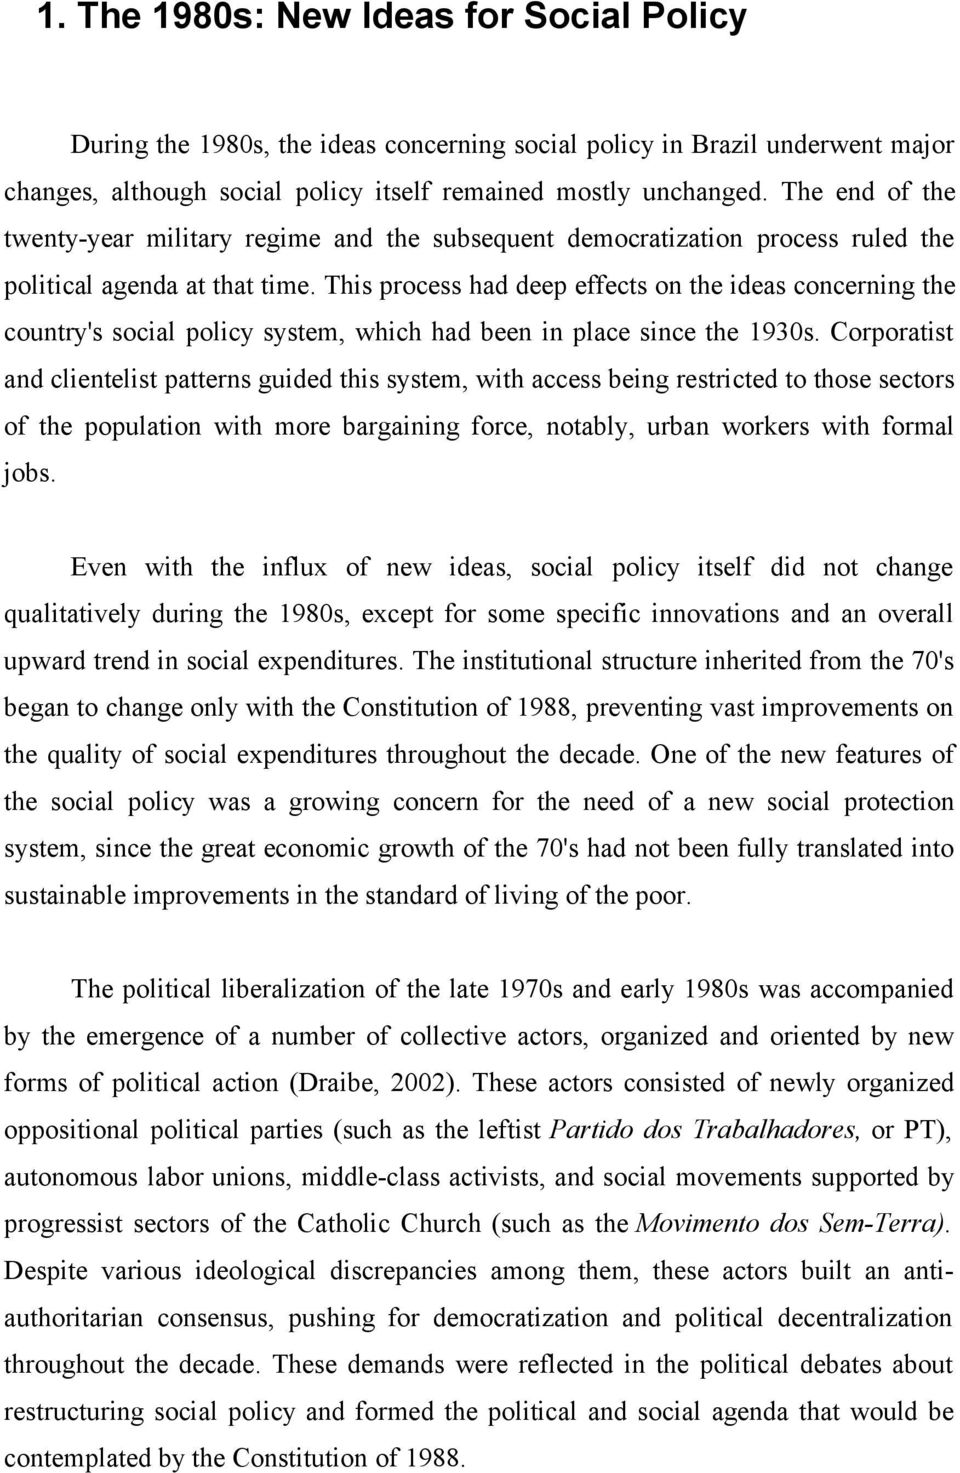 This process had deep effects on the ideas concerning the country's social policy system, which had been in place since the 1930s.